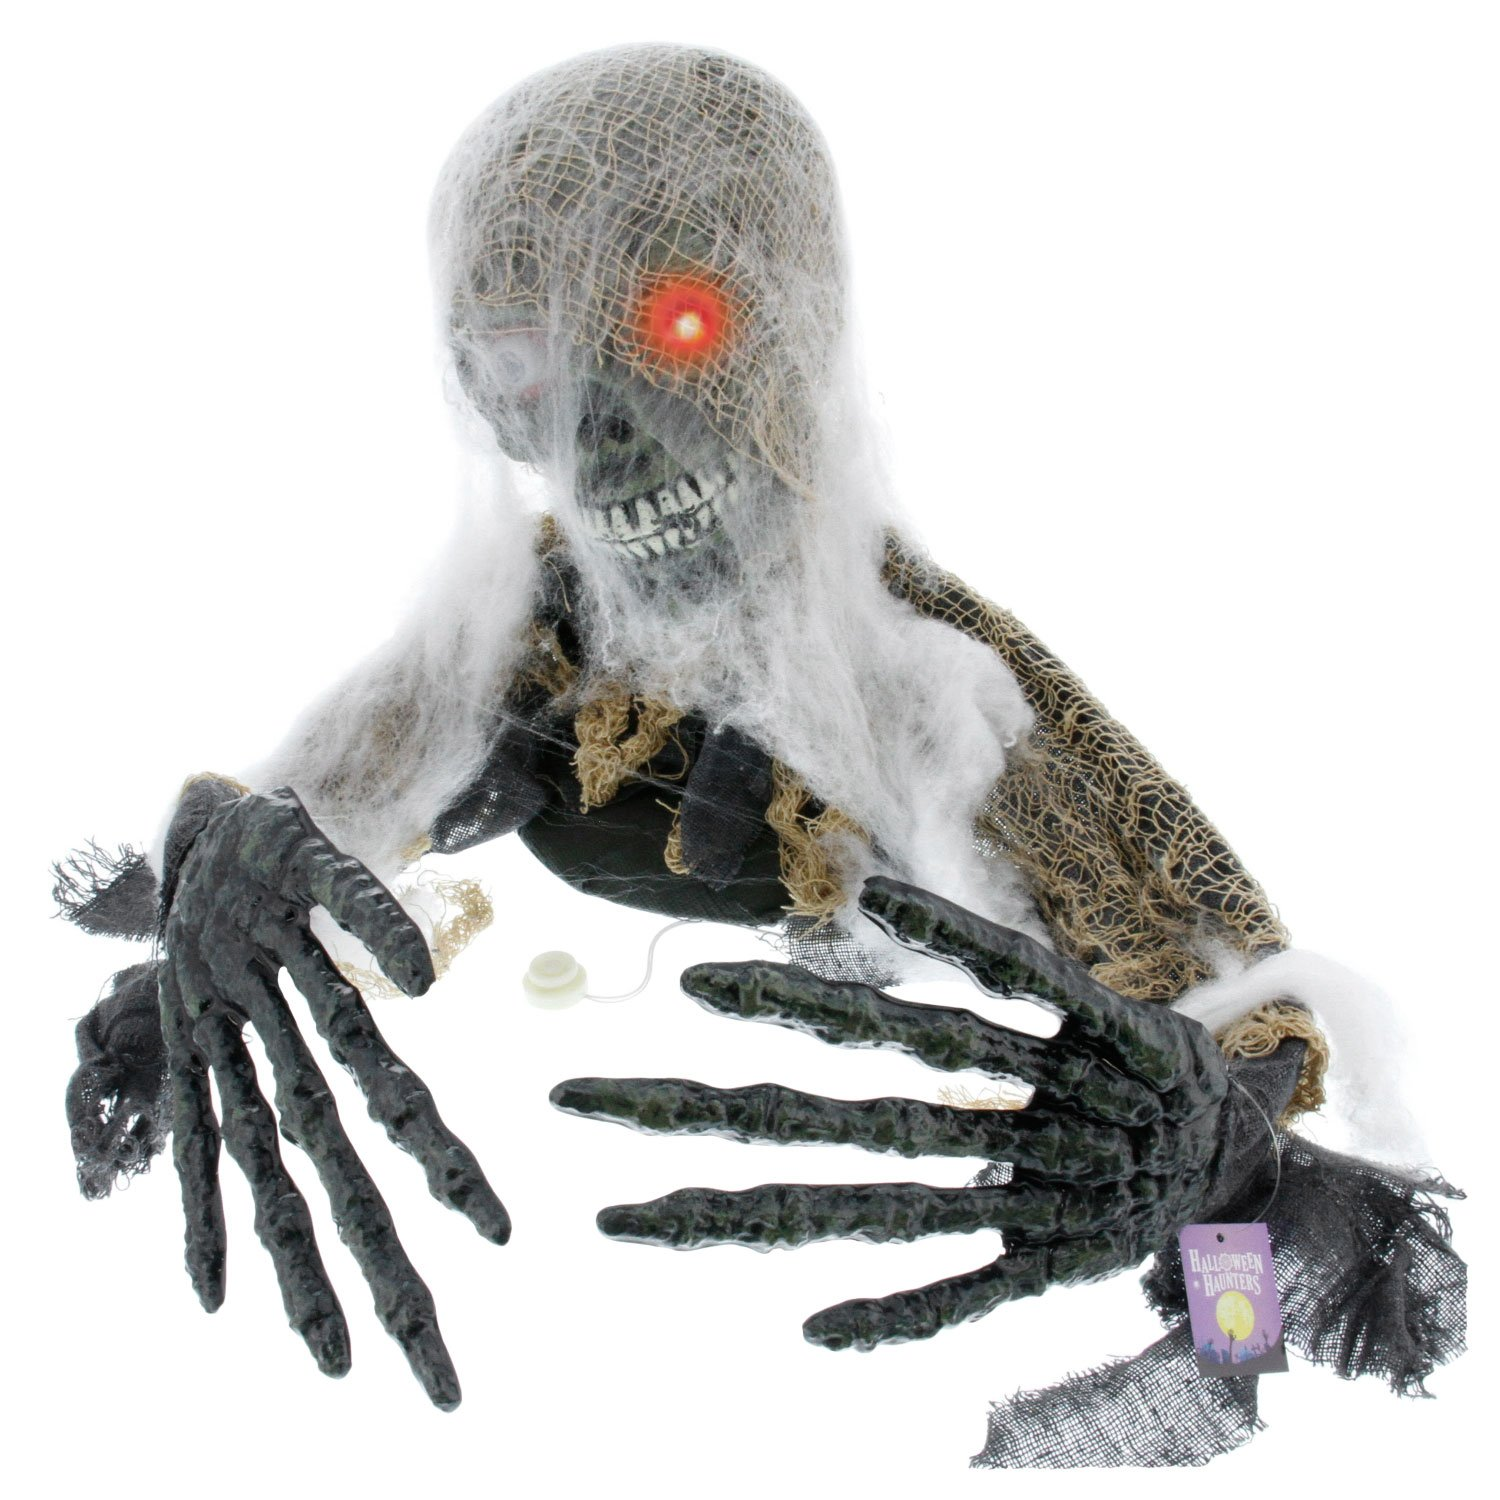 Battery Operated Creepy Zombie Animated Moving Eyes Sounds Halloween Prop Décor